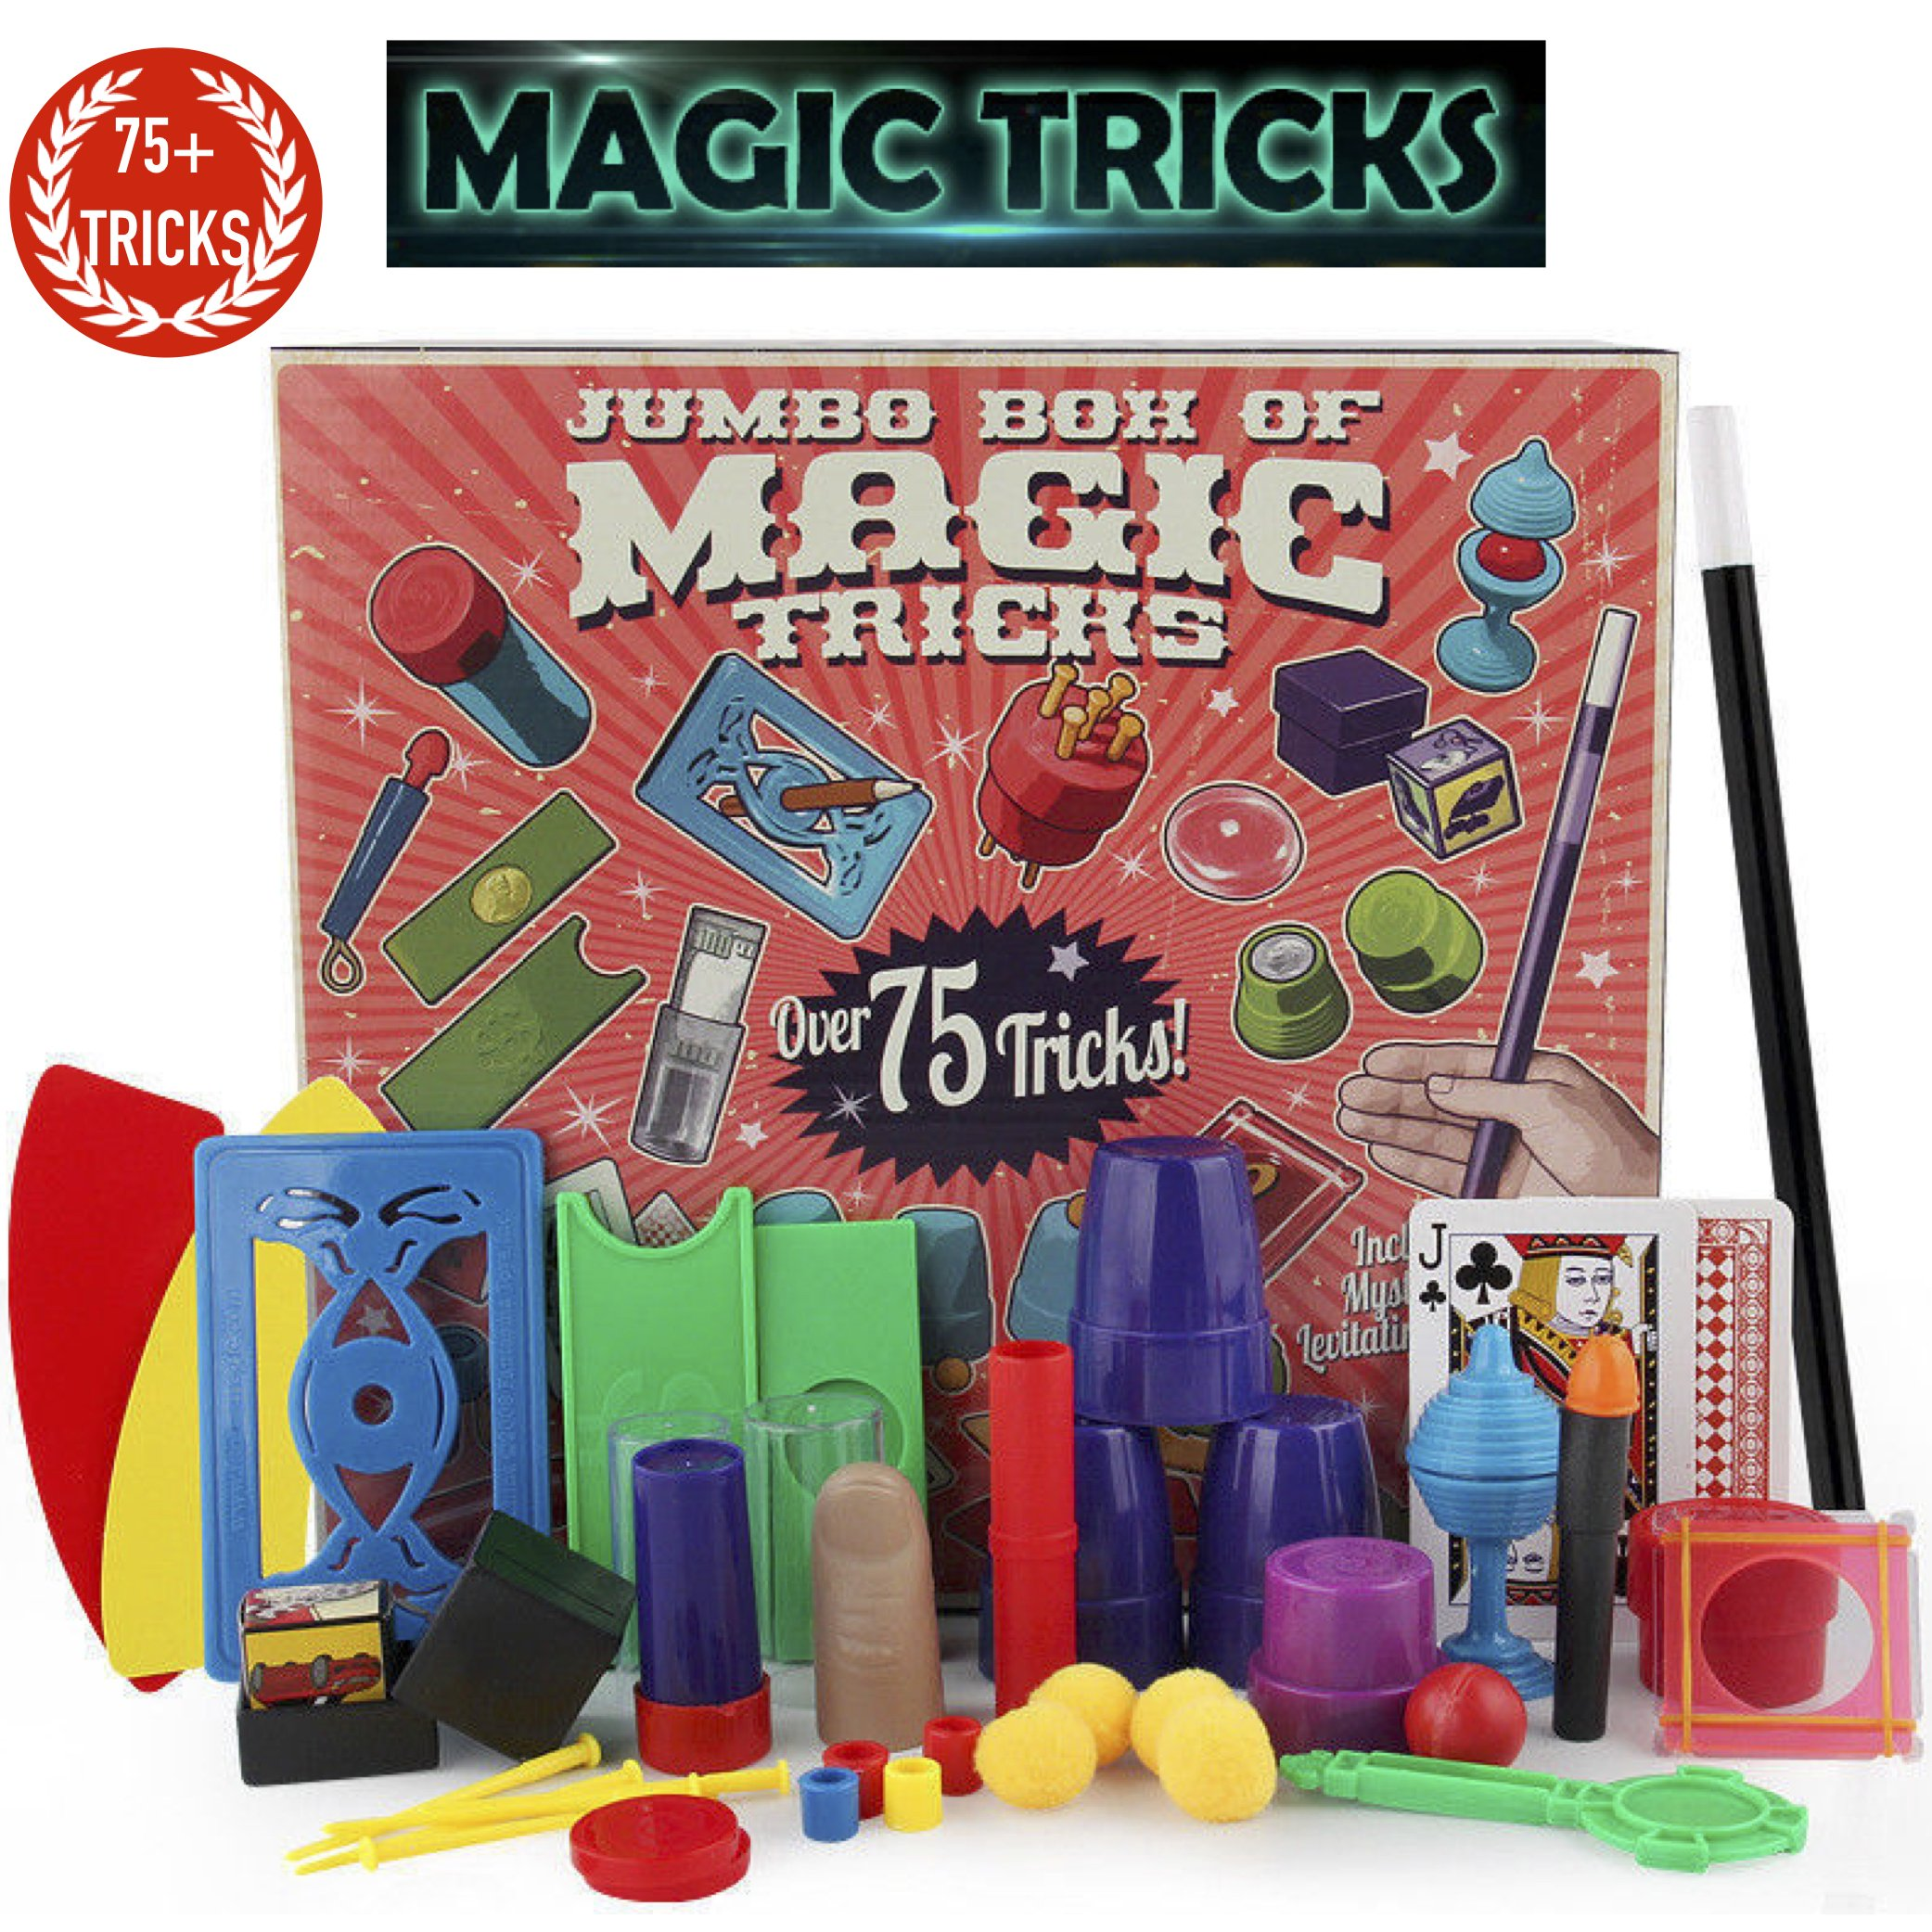 PinSpace Jumbo Magic Tricks Set for Kids with Over 75 tricks, classic illusions, Mysterious Levitating Wand, Magic Cup Ball, Coin Tricks, ready to play, idea birthday gift for kids 6 years and up